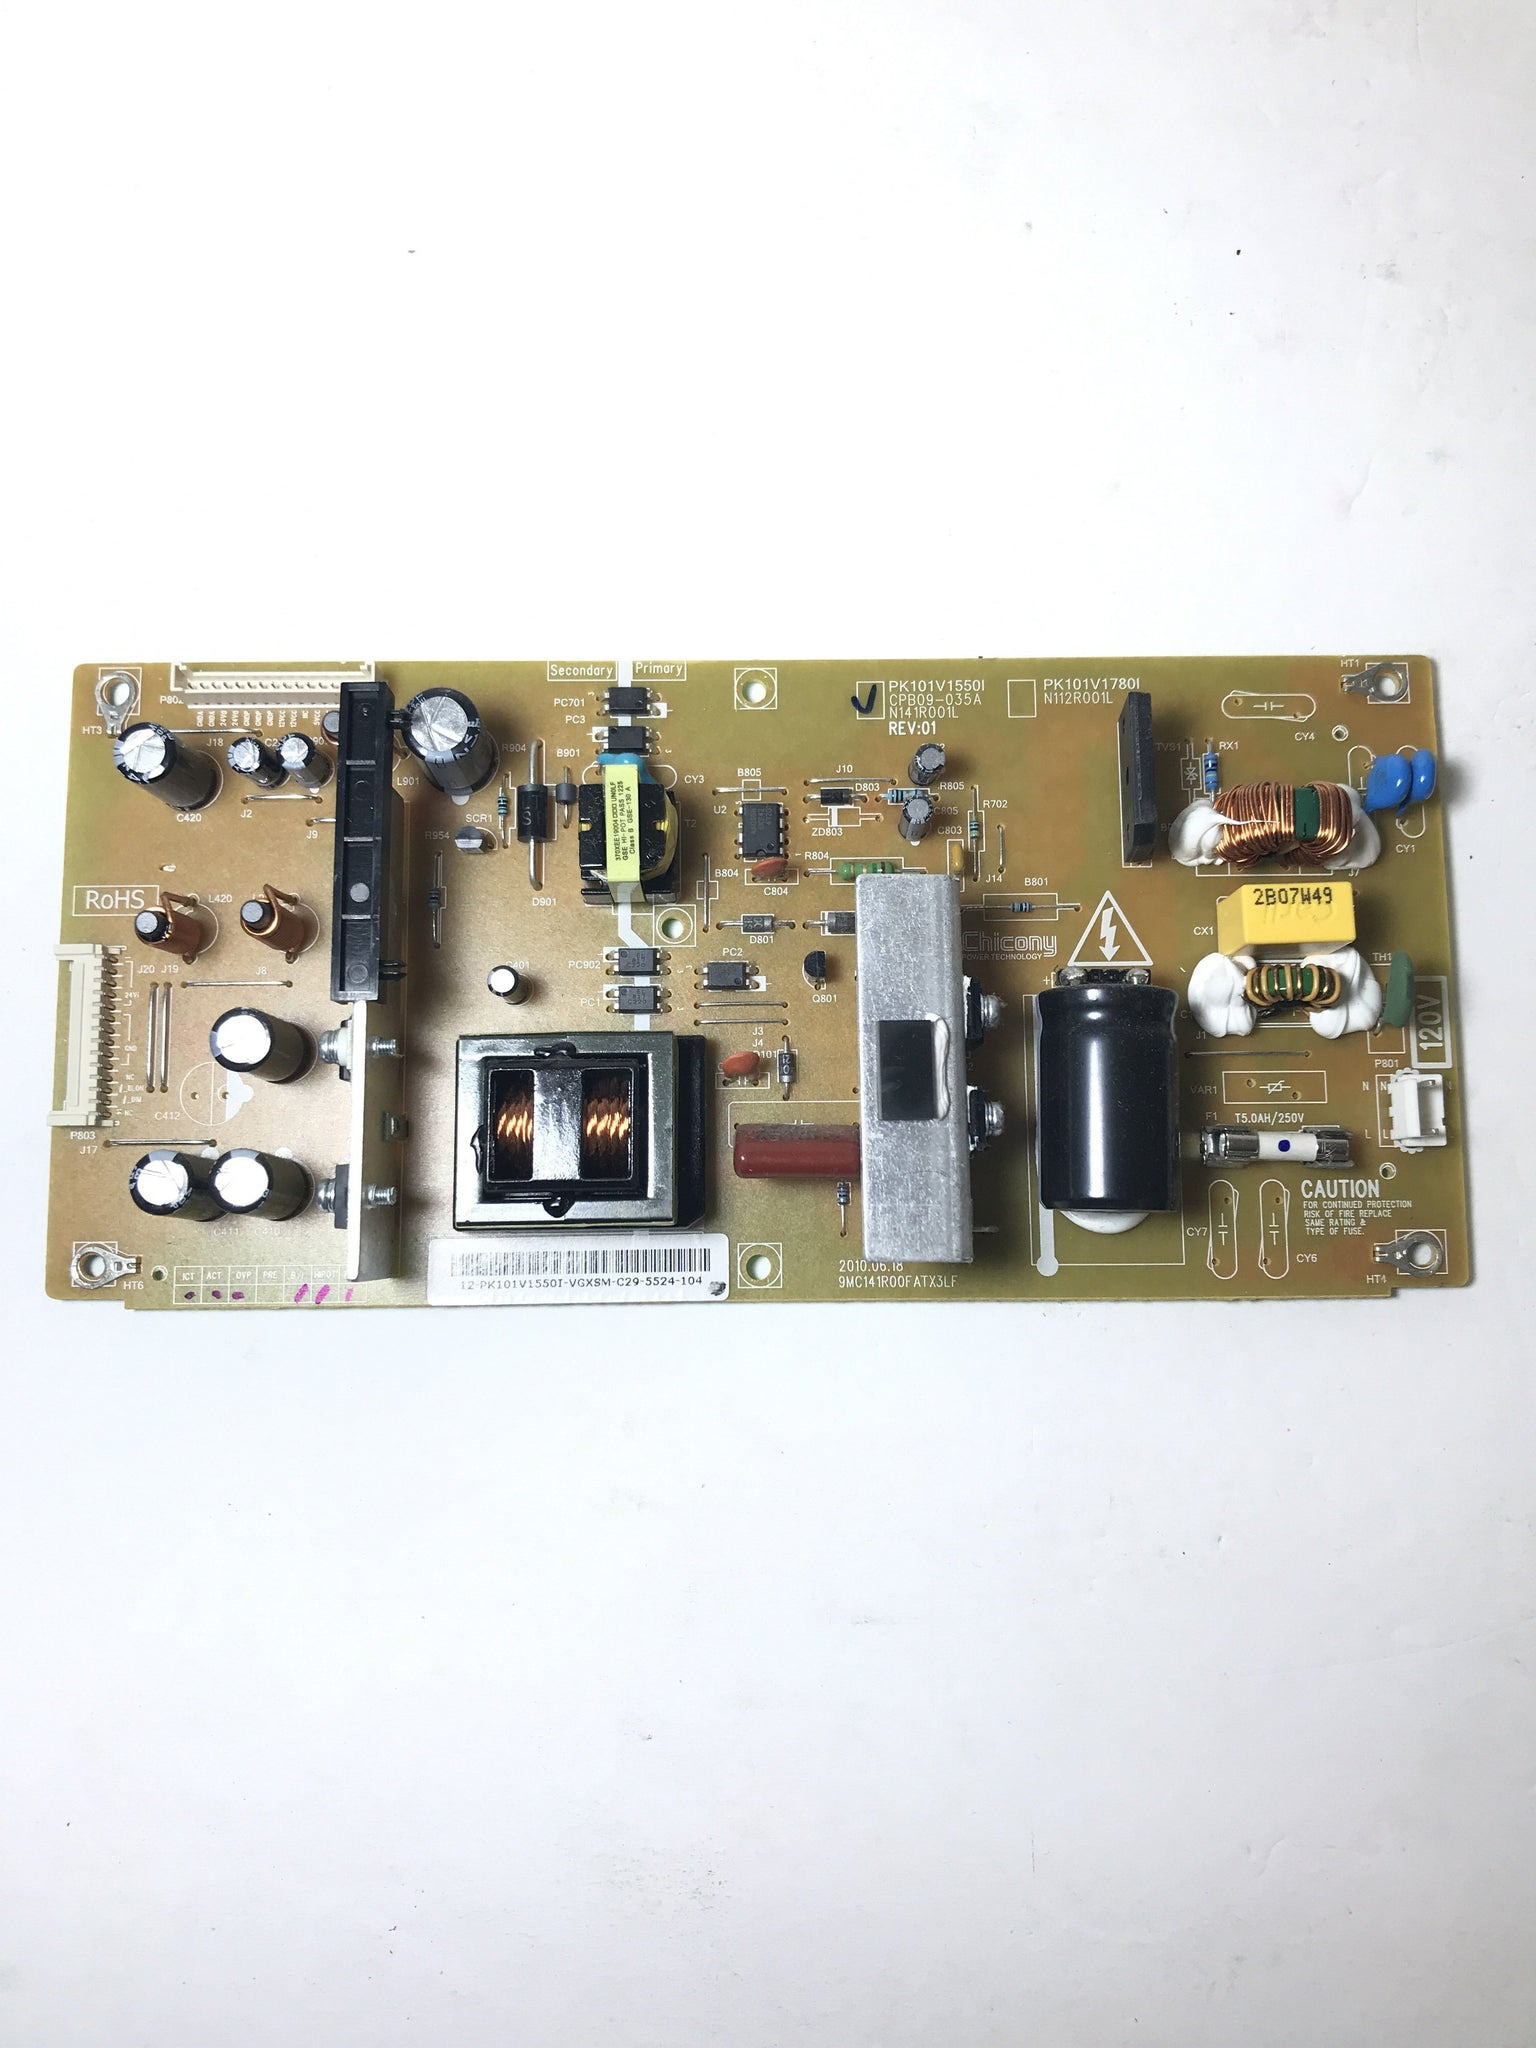 Toshiba PK101V1550I (CPB09-035A, N141R001L) Power Supply Unit